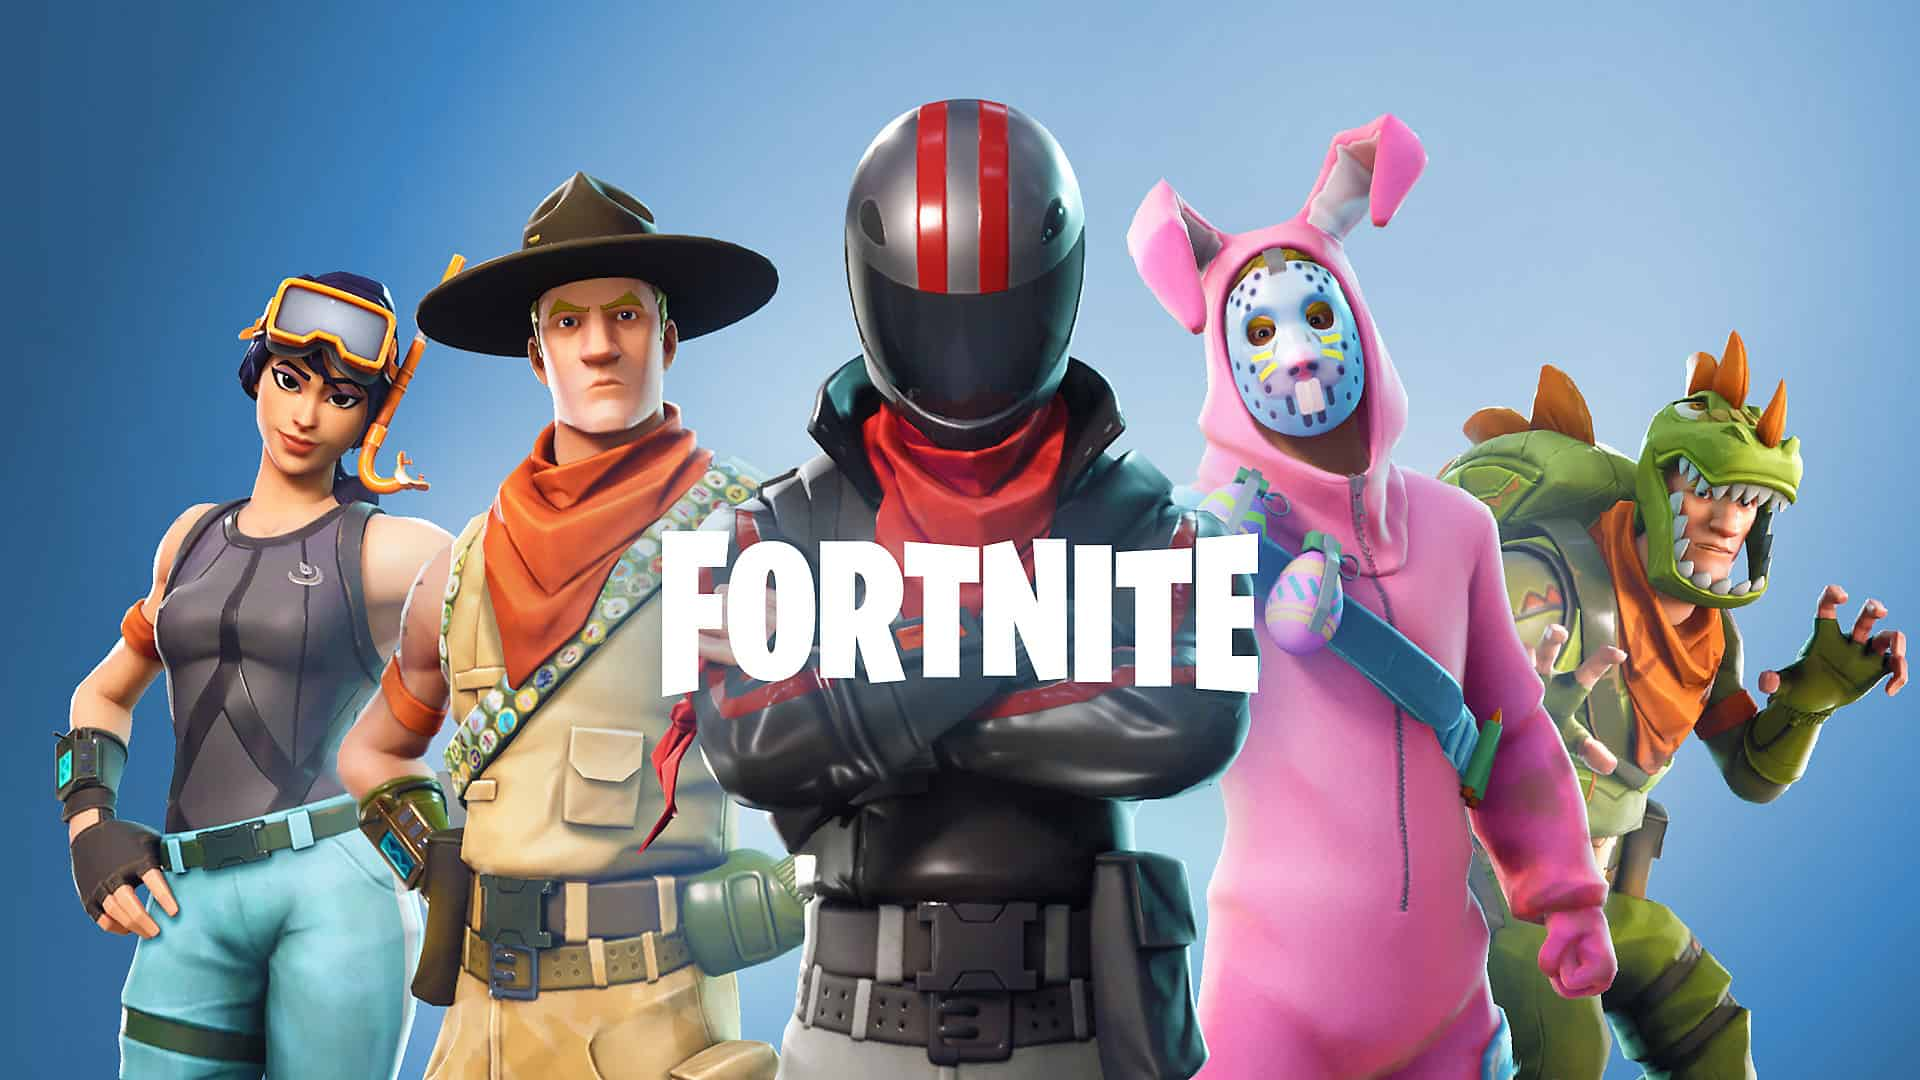 Fortnite update version 2.31